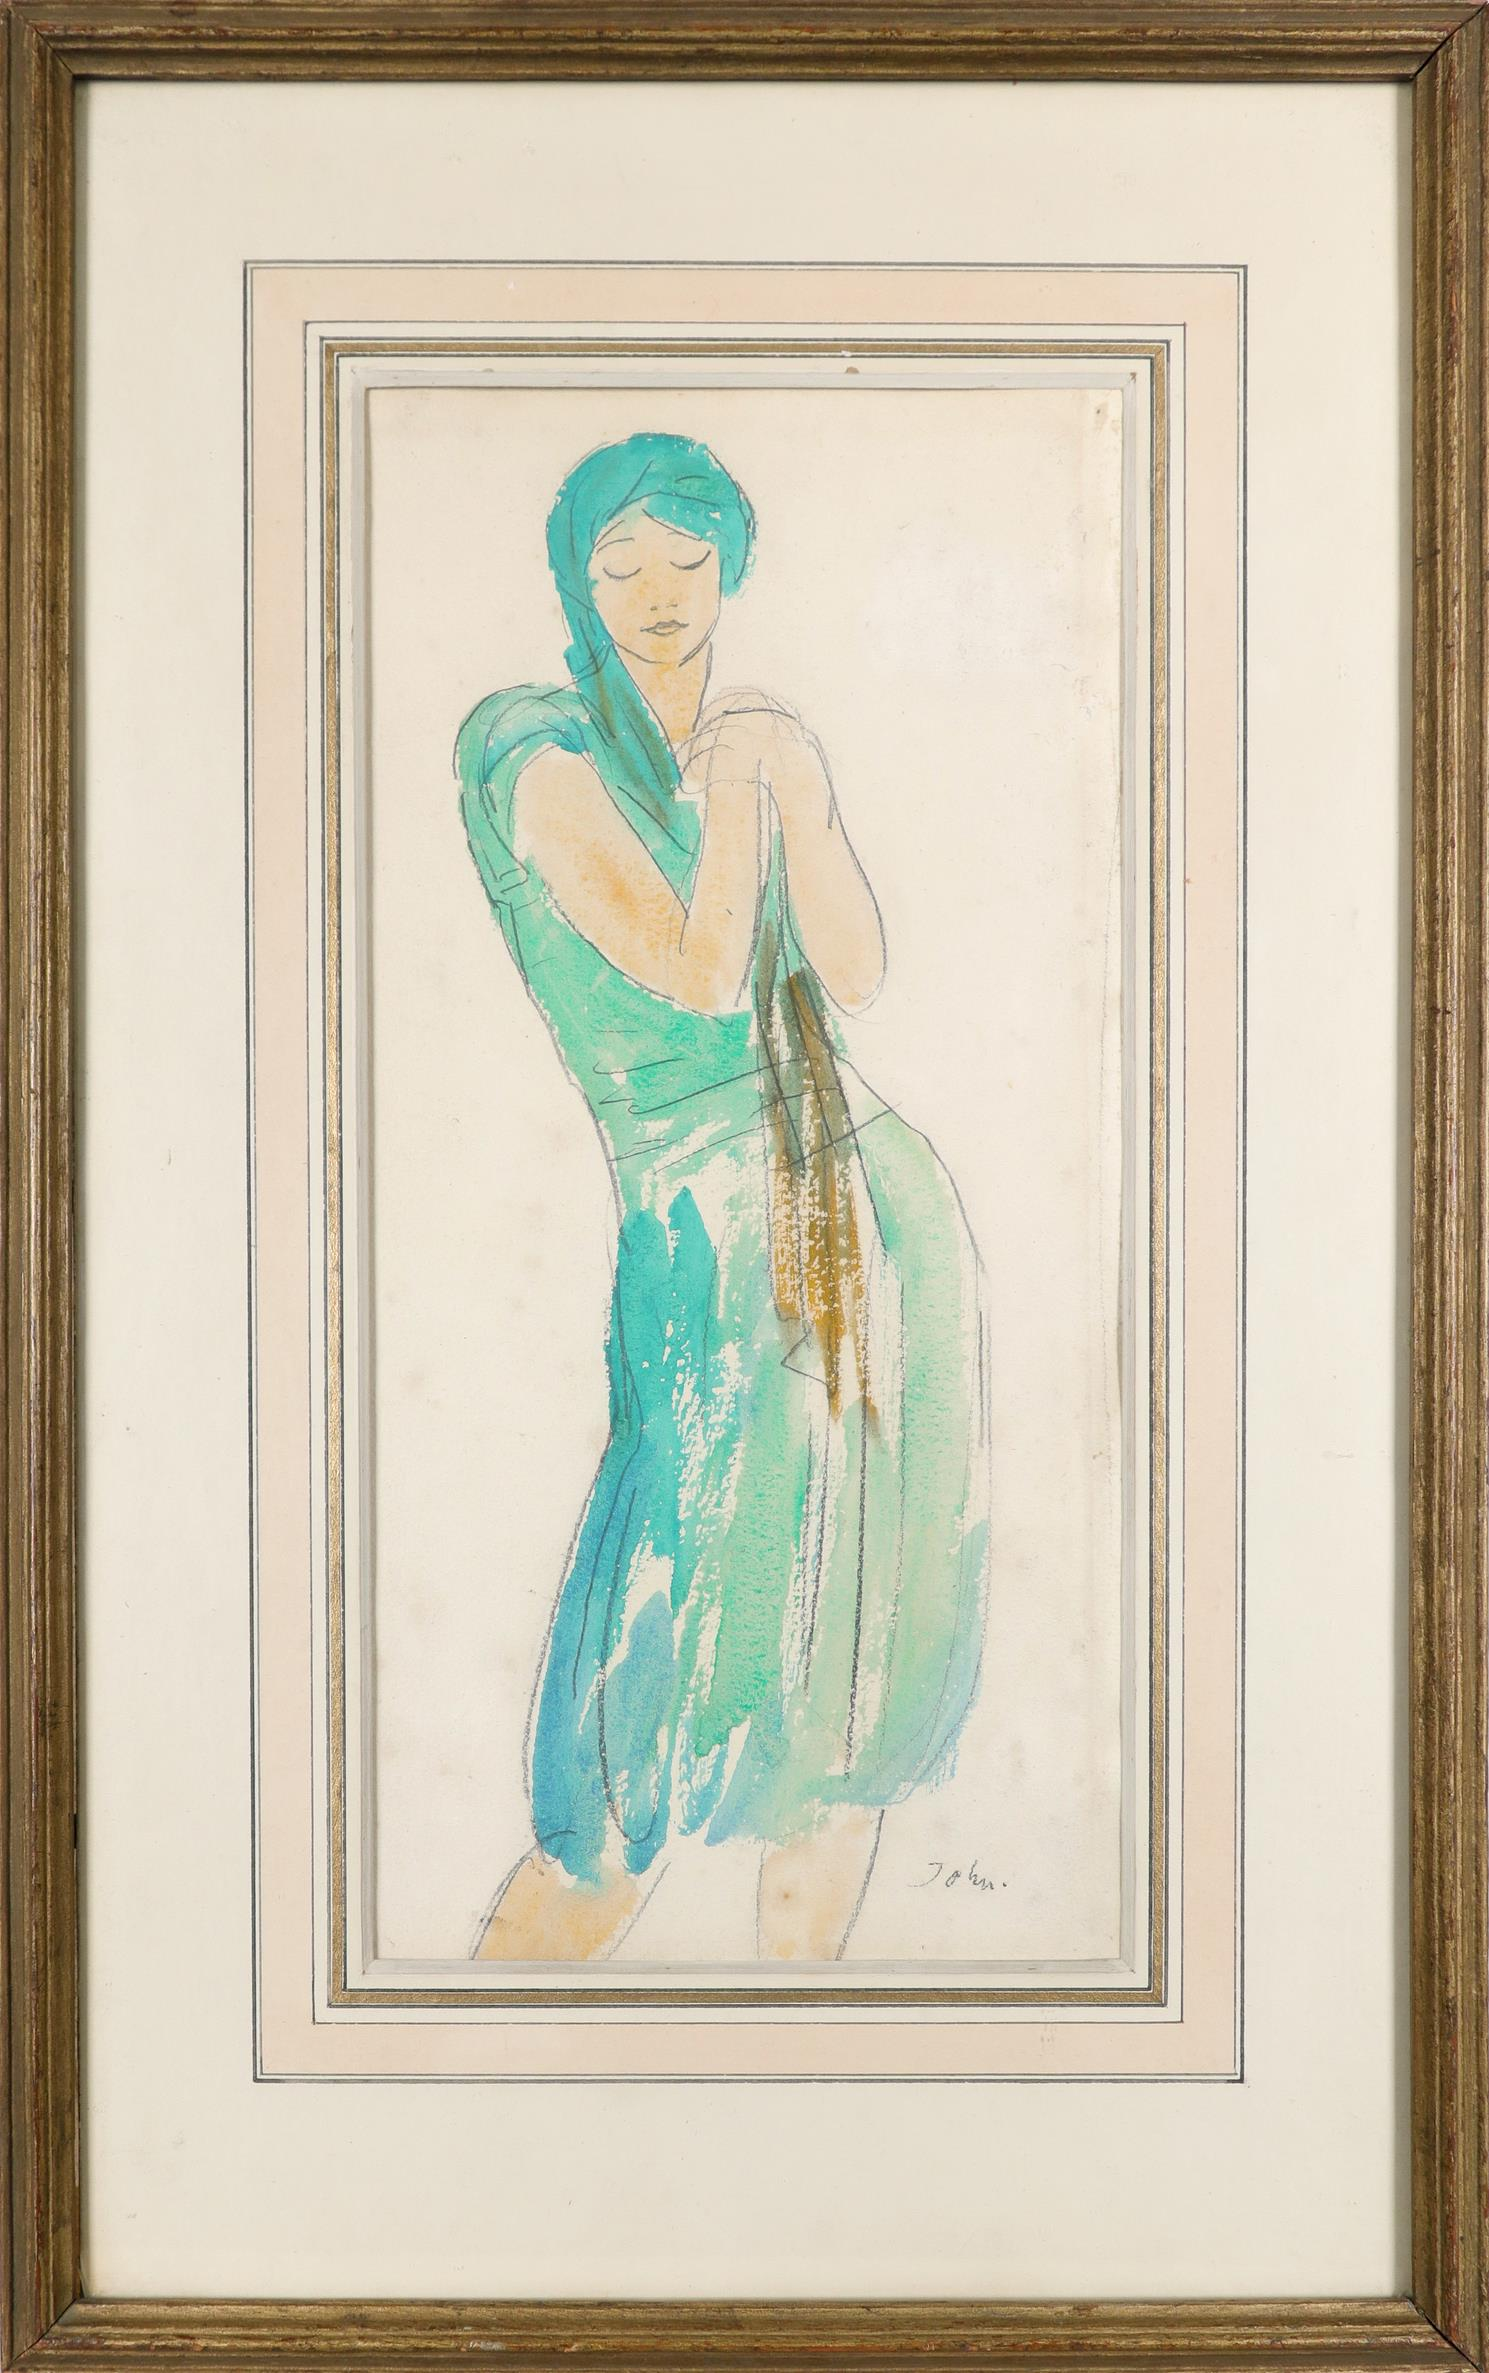 ‡Augustus John OM,RA (1878-1961) Study of a dancing girl Signed John (lower right) Watercolour and - Image 2 of 3